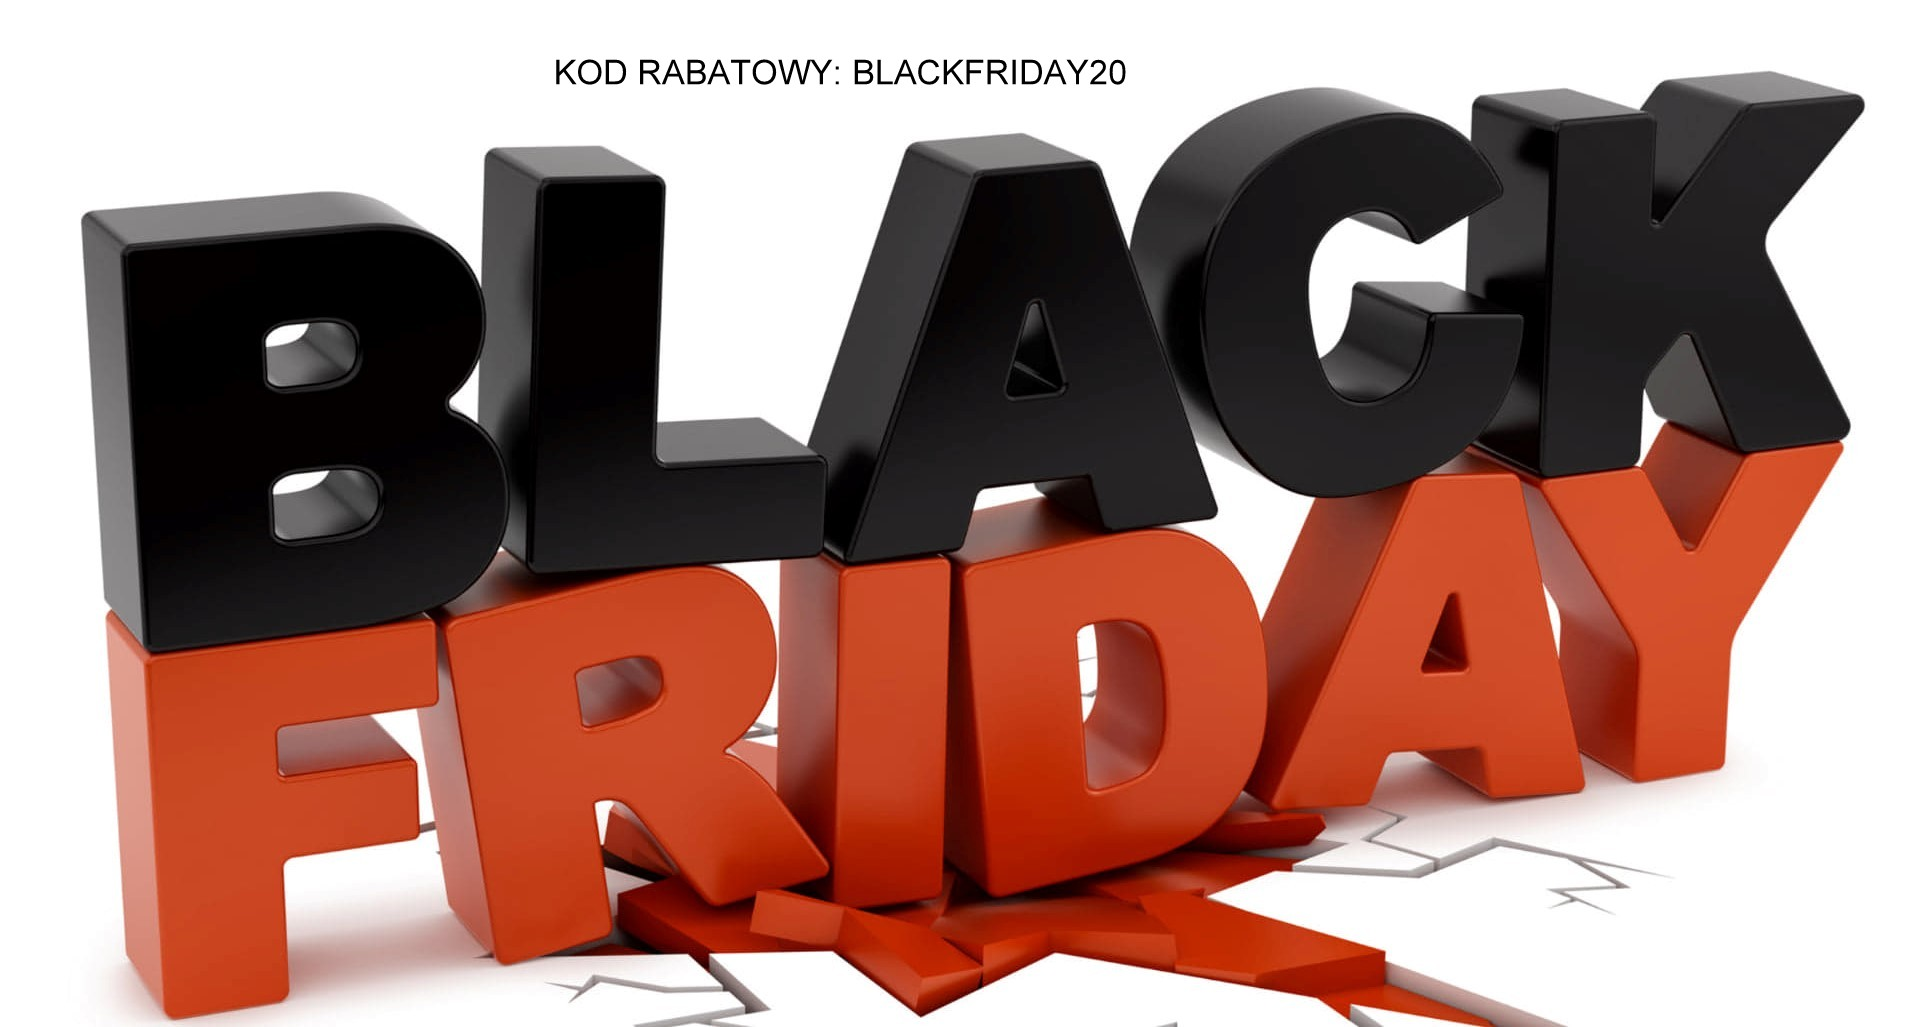 BLACKFRIDAY20 KOD RABATOWY